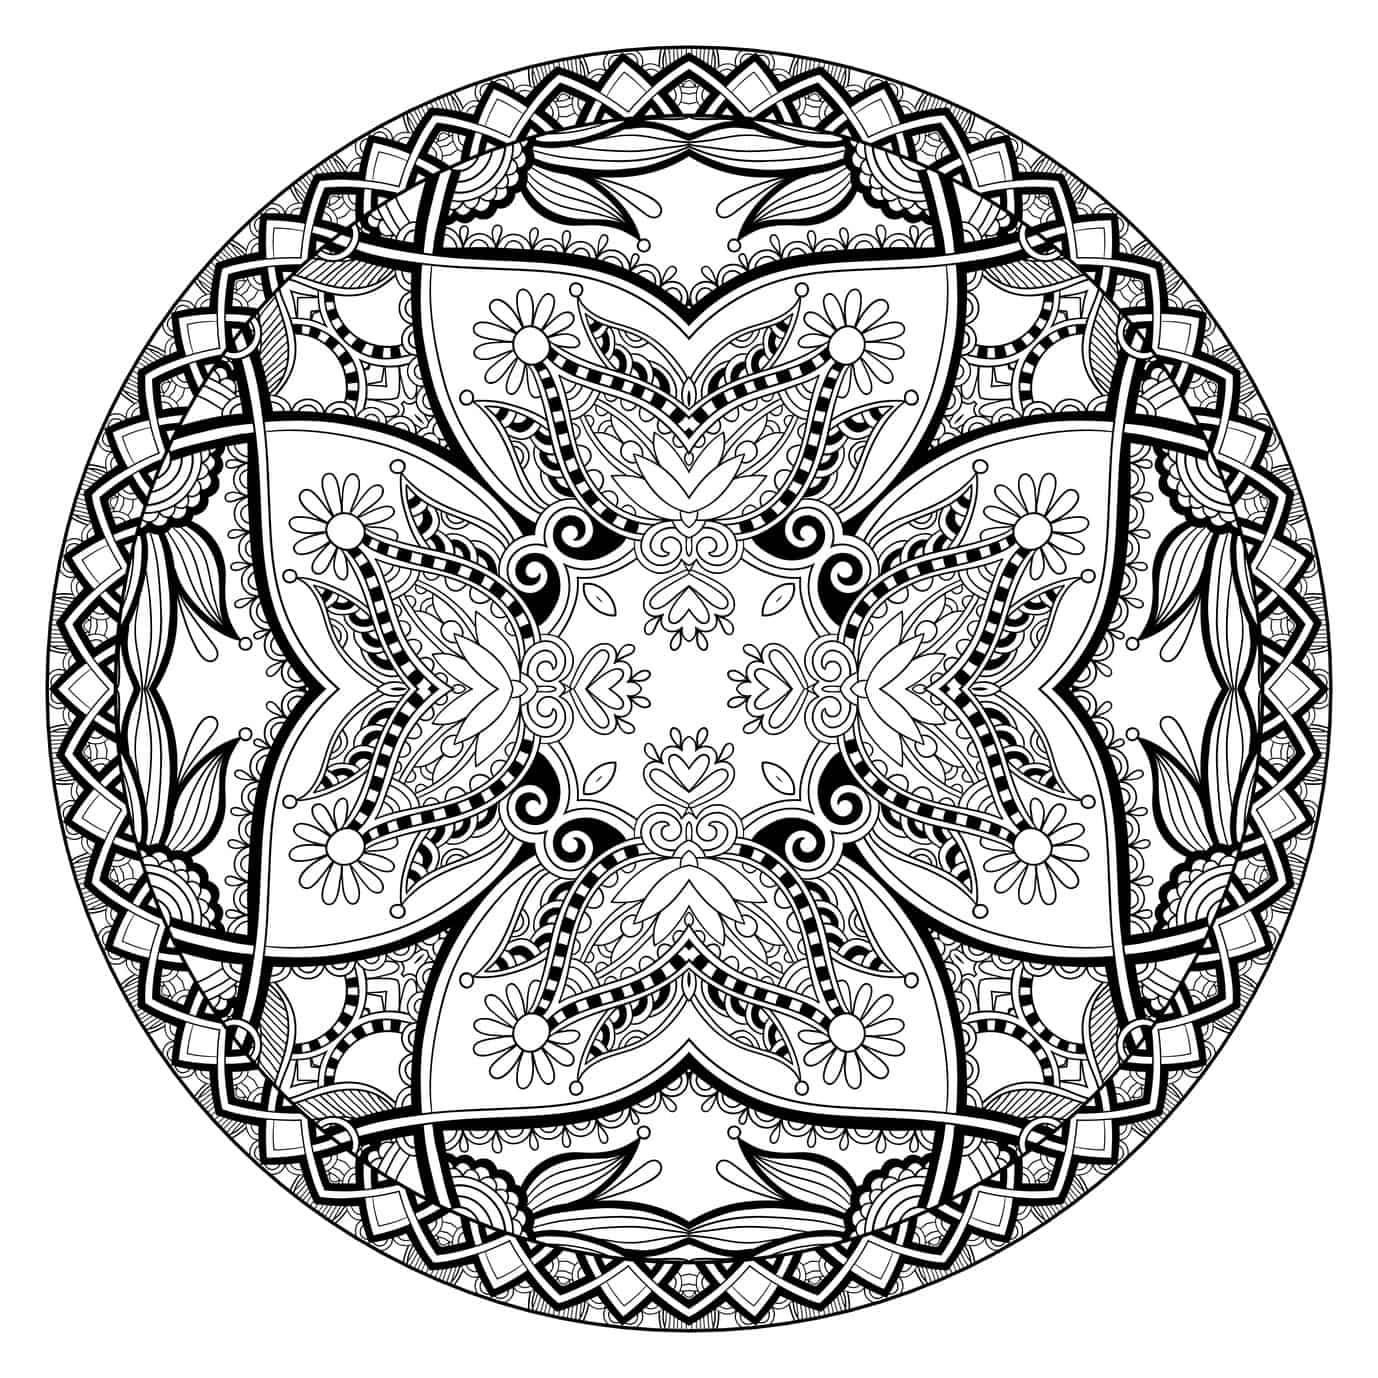 Colouring adults benefits - Adult Coloring Mandala